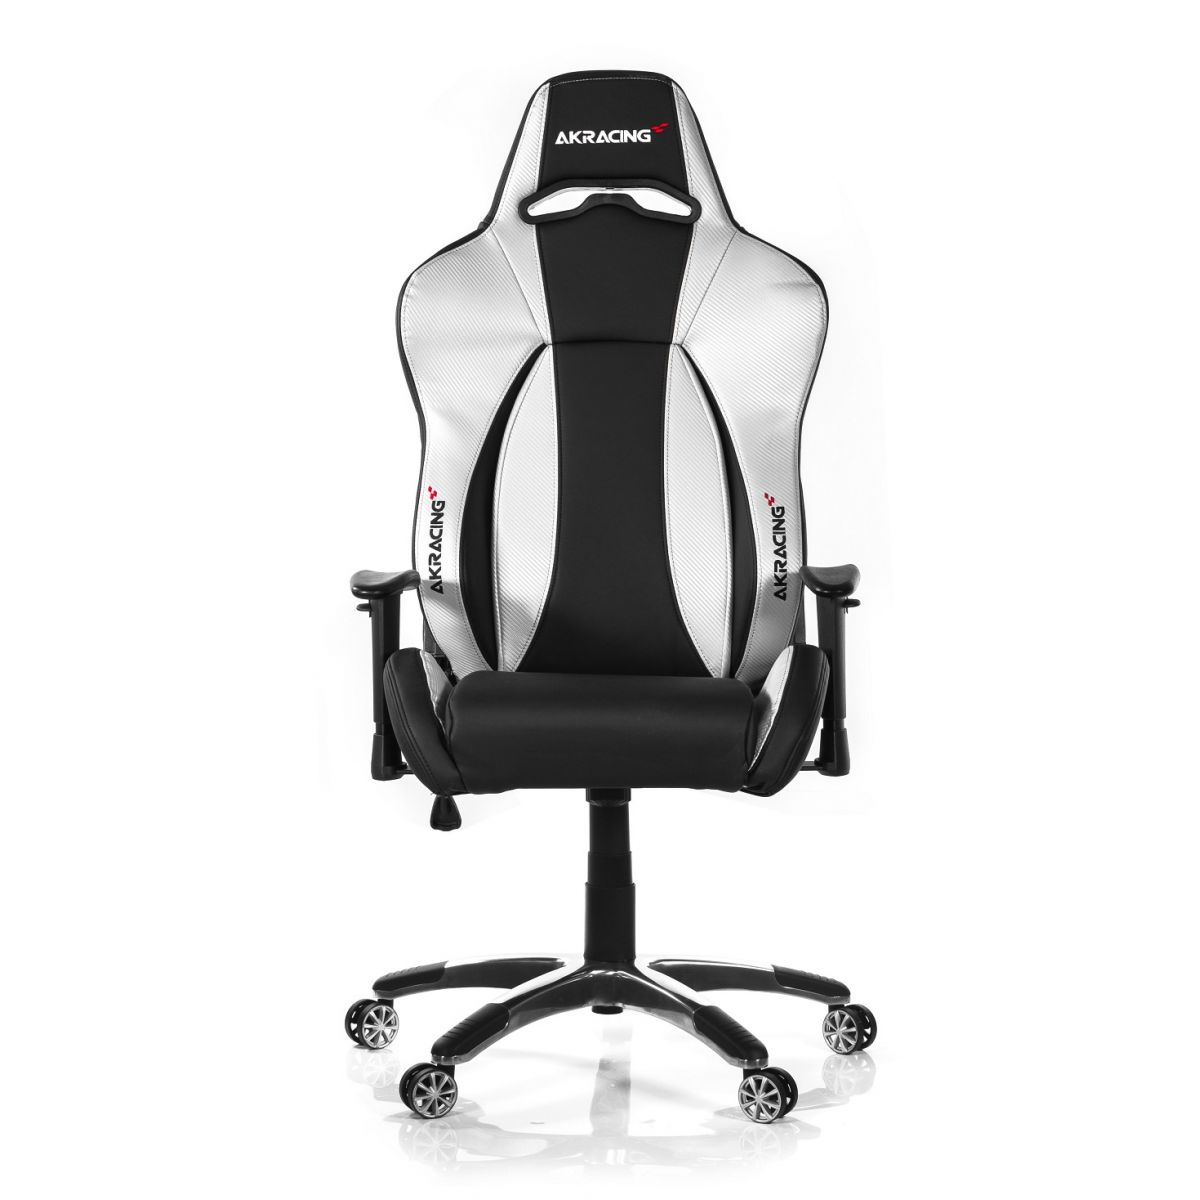 Cadeira AKracing Premium Black/Silver V2 AK-7002-BS - AKracing